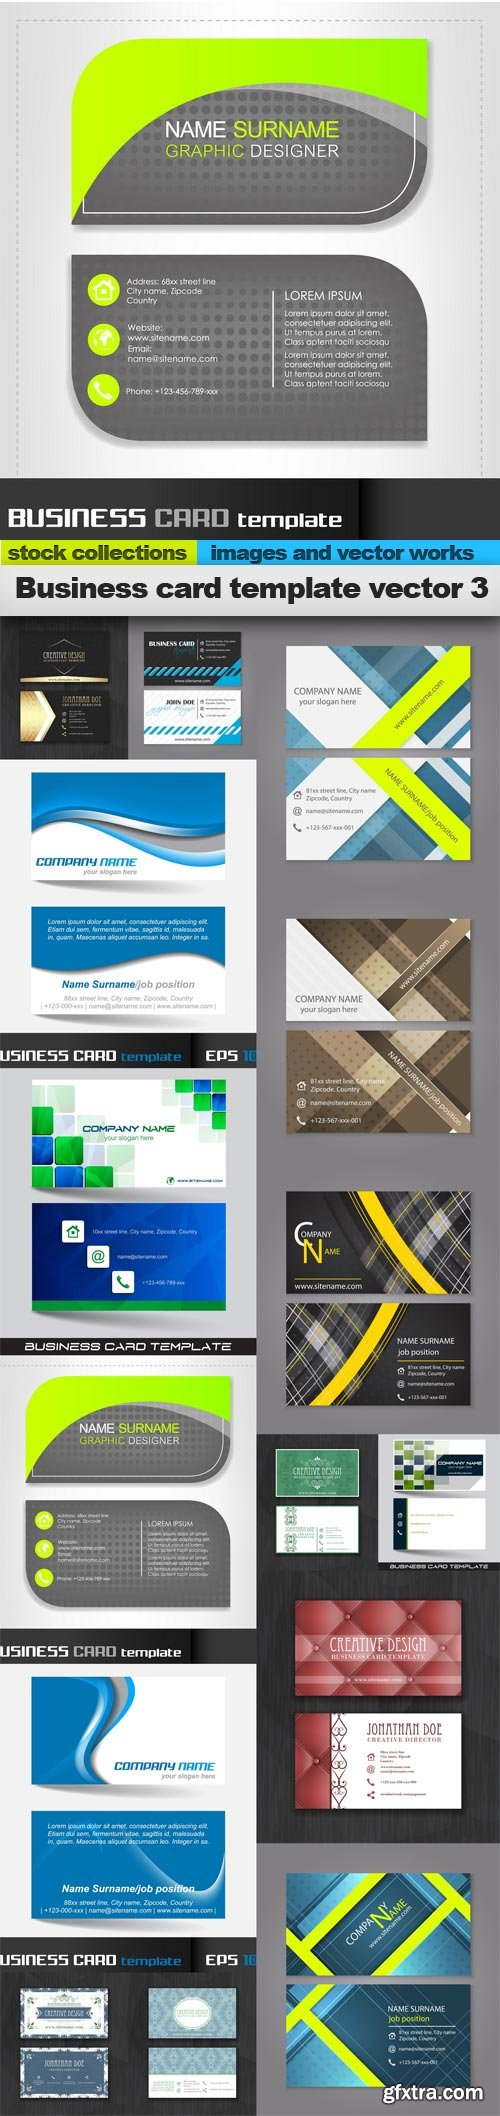 Business card template vector 3, 15 x EPS